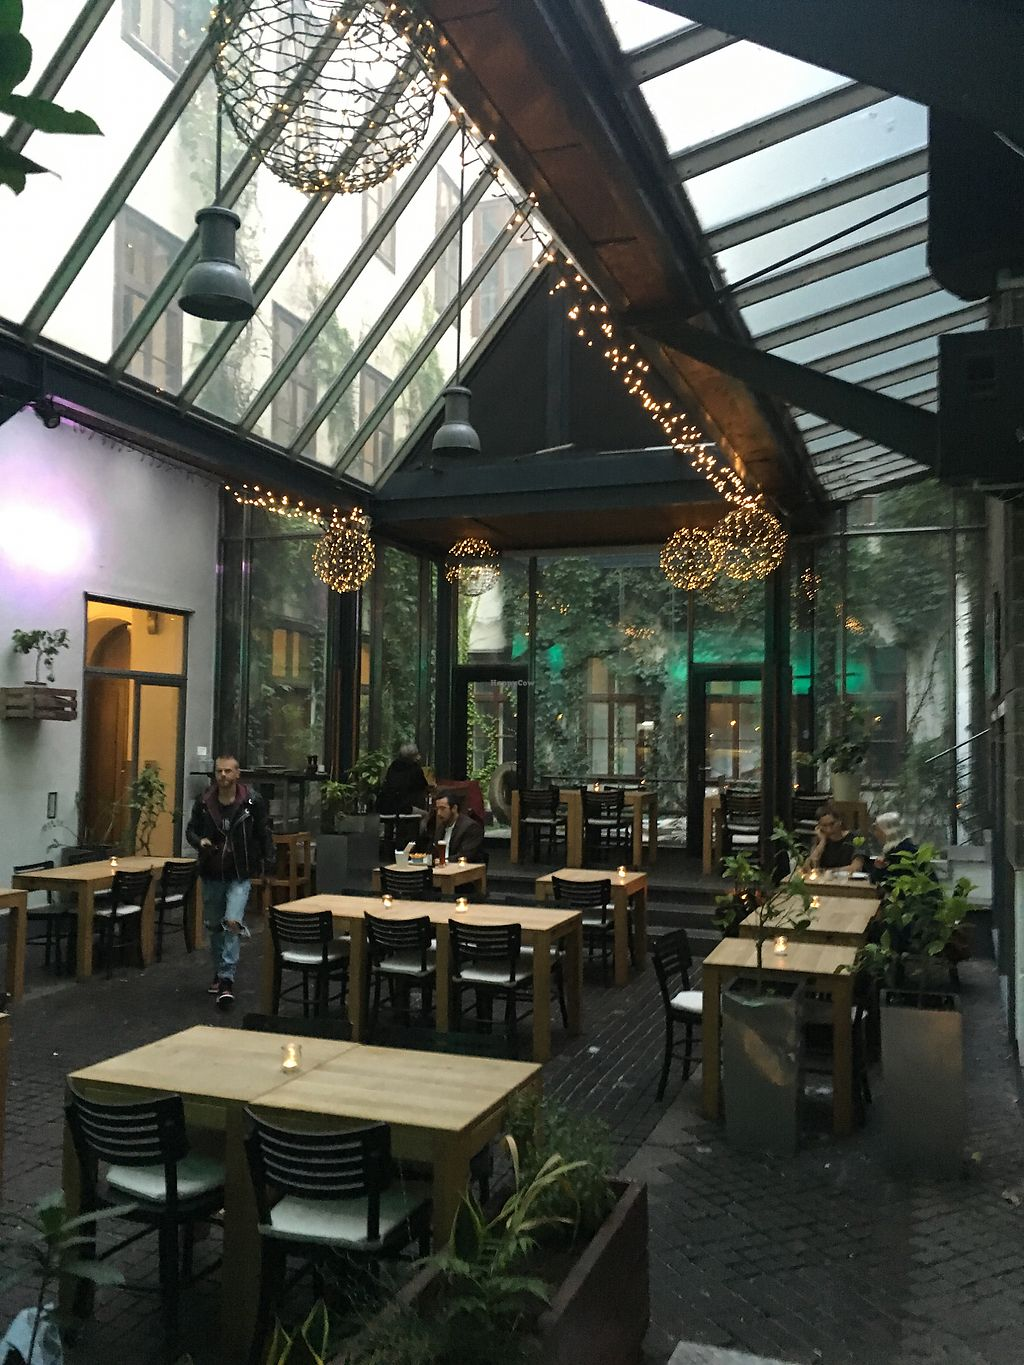 """Photo of TIAN Bistro am Spittelberg  by <a href=""""/members/profile/LilyHarper"""">LilyHarper</a> <br/>Indoor seating <br/> September 6, 2017  - <a href='/contact/abuse/image/63223/301512'>Report</a>"""